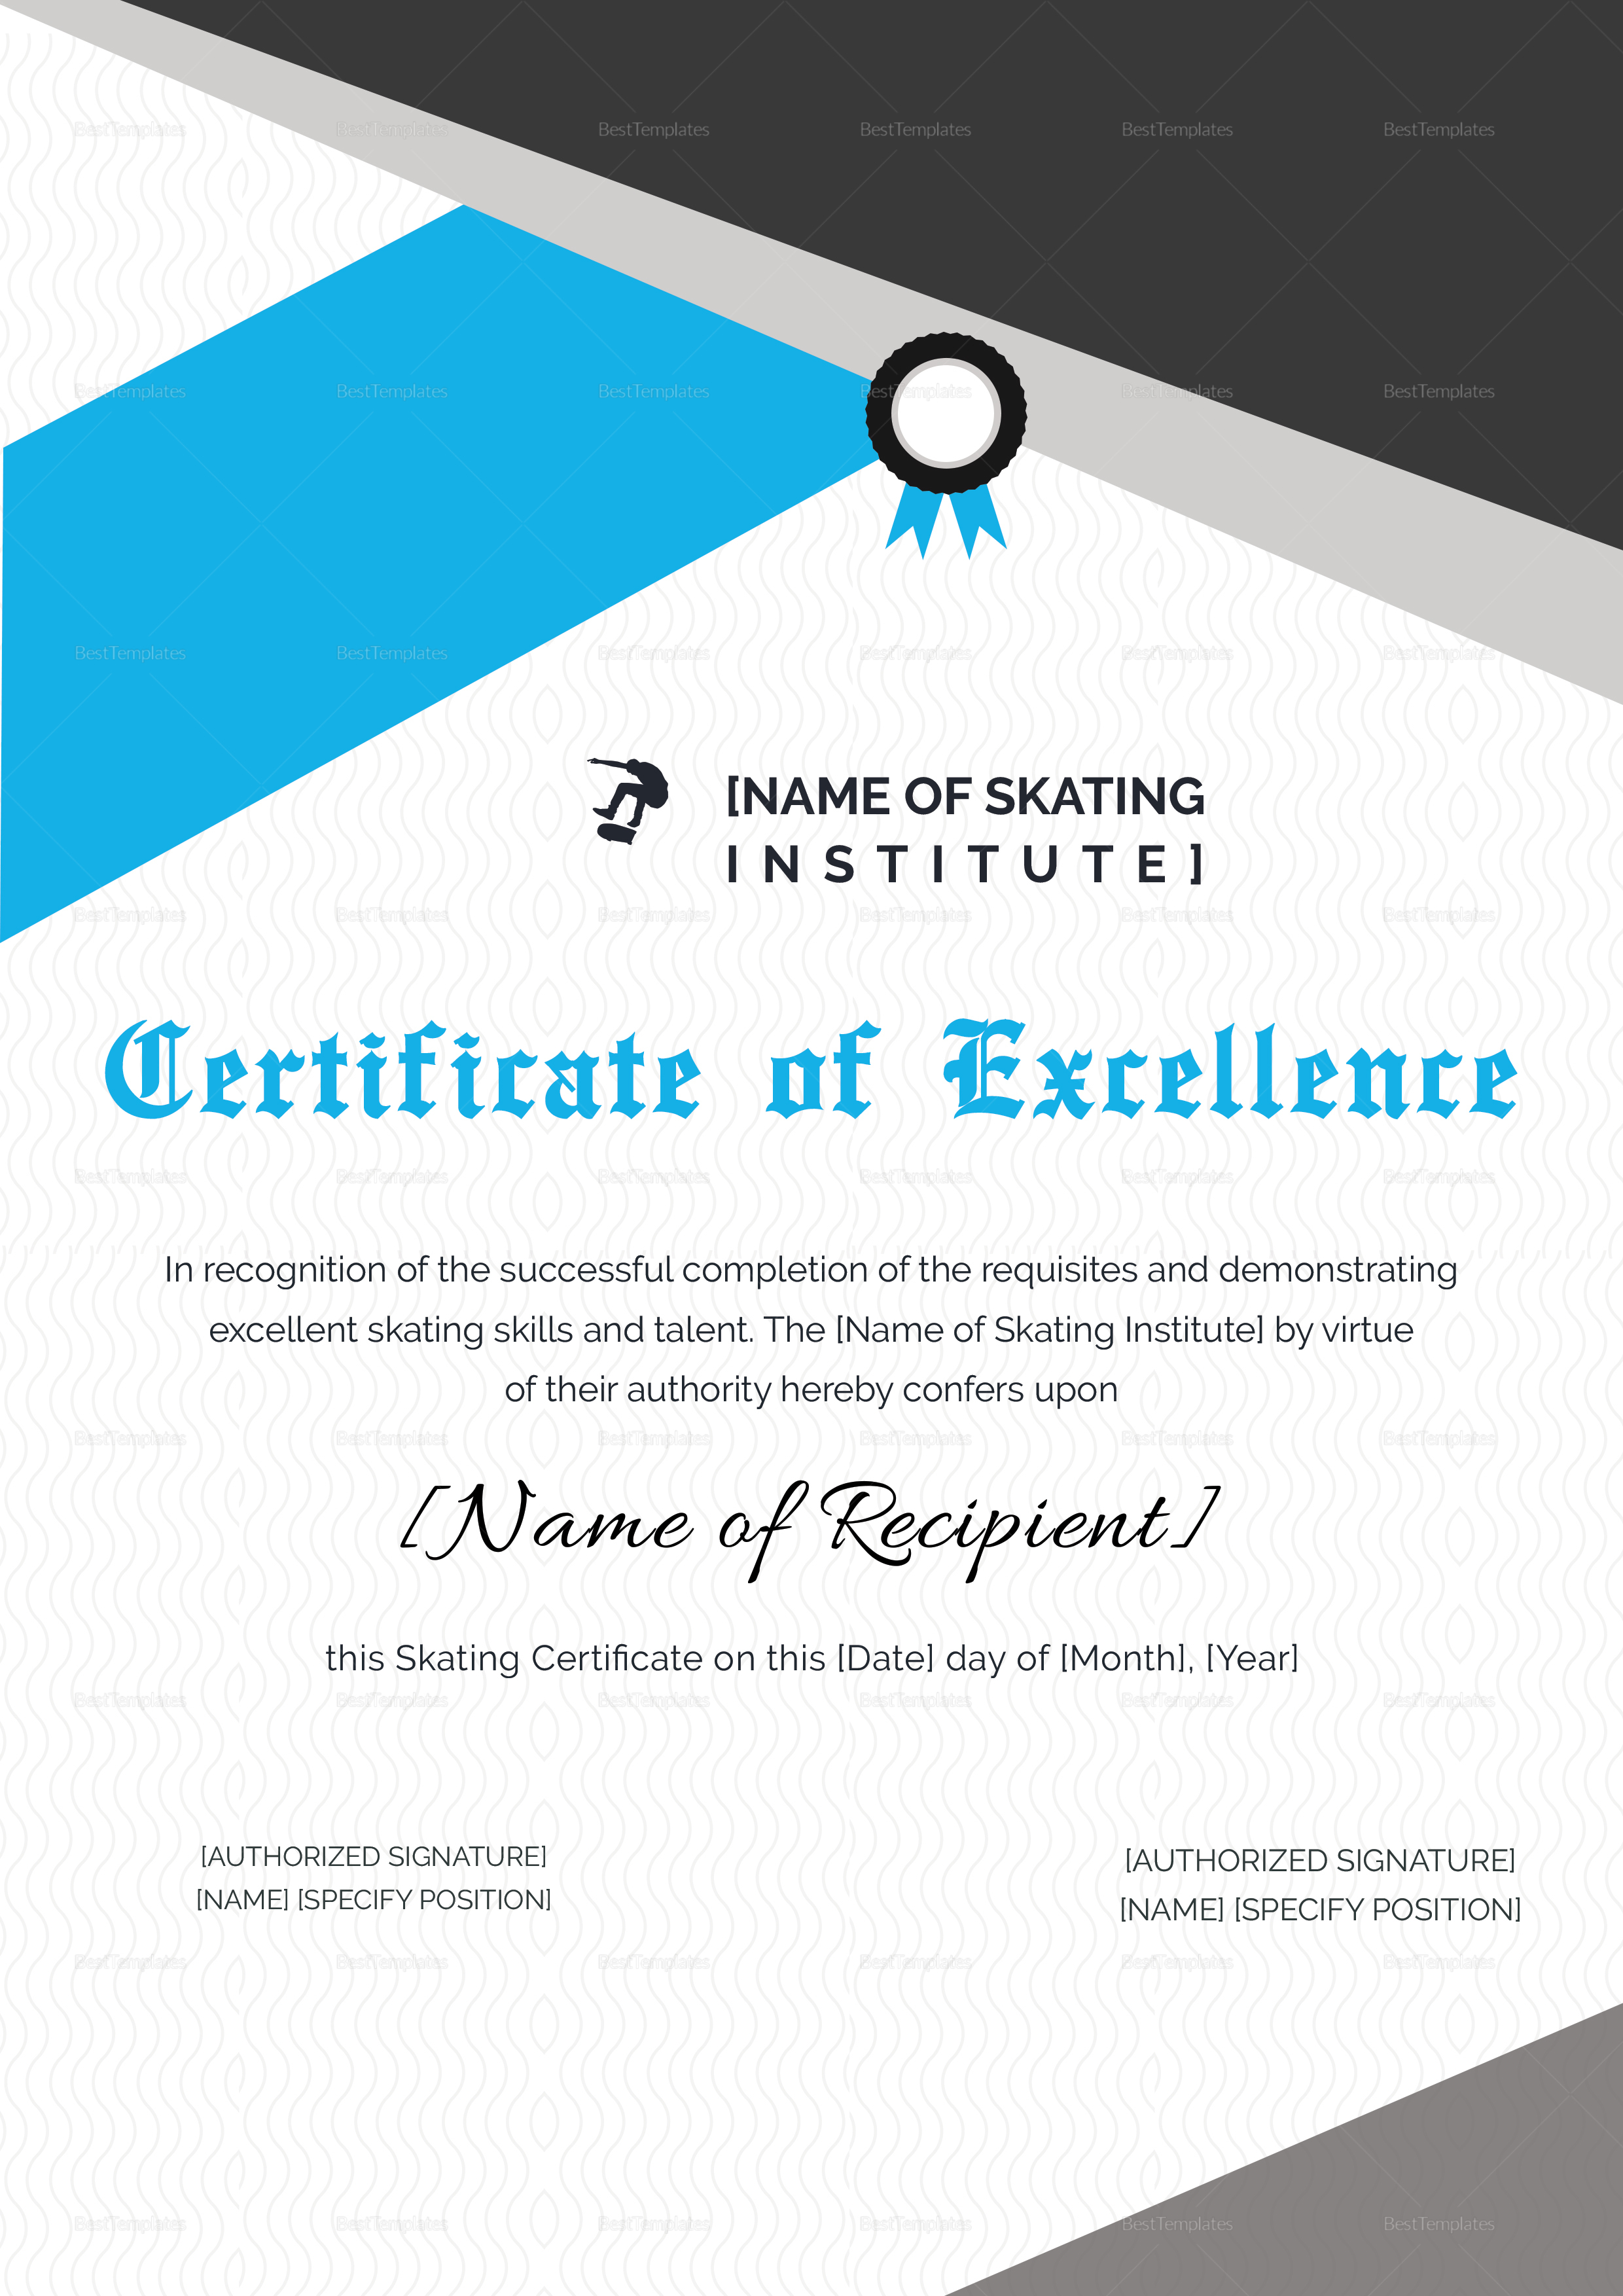 Certificate of Excellence for Skating